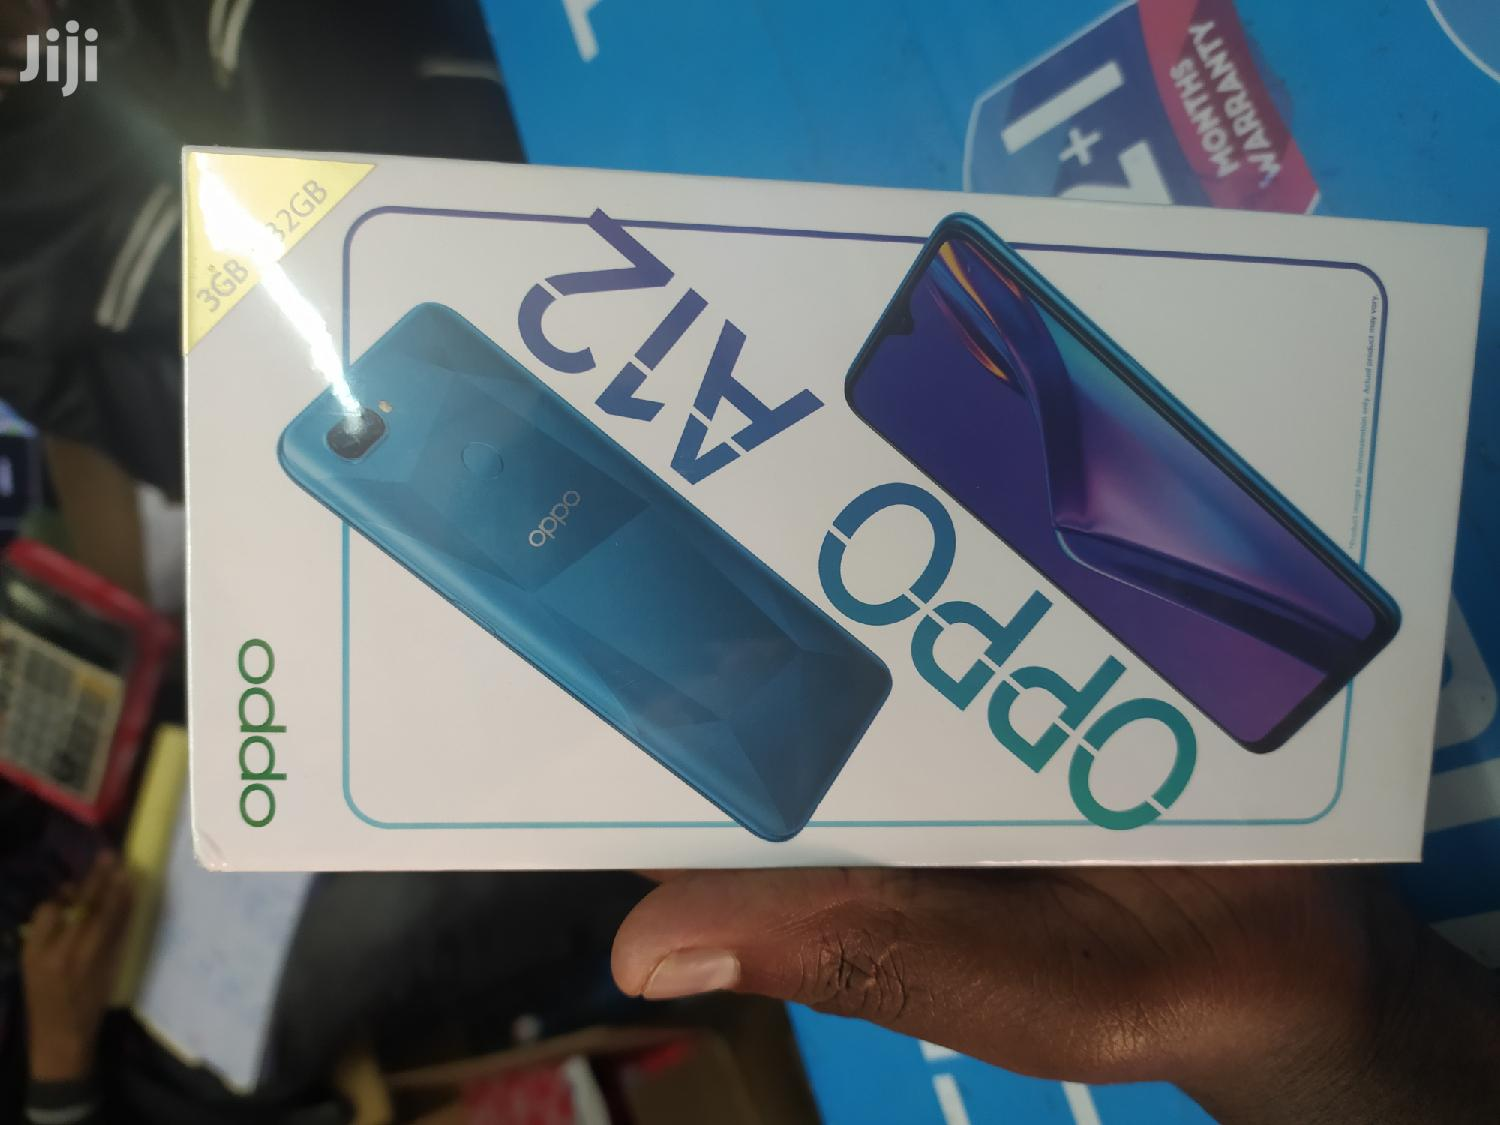 New Oppo A12 32 GB Gold